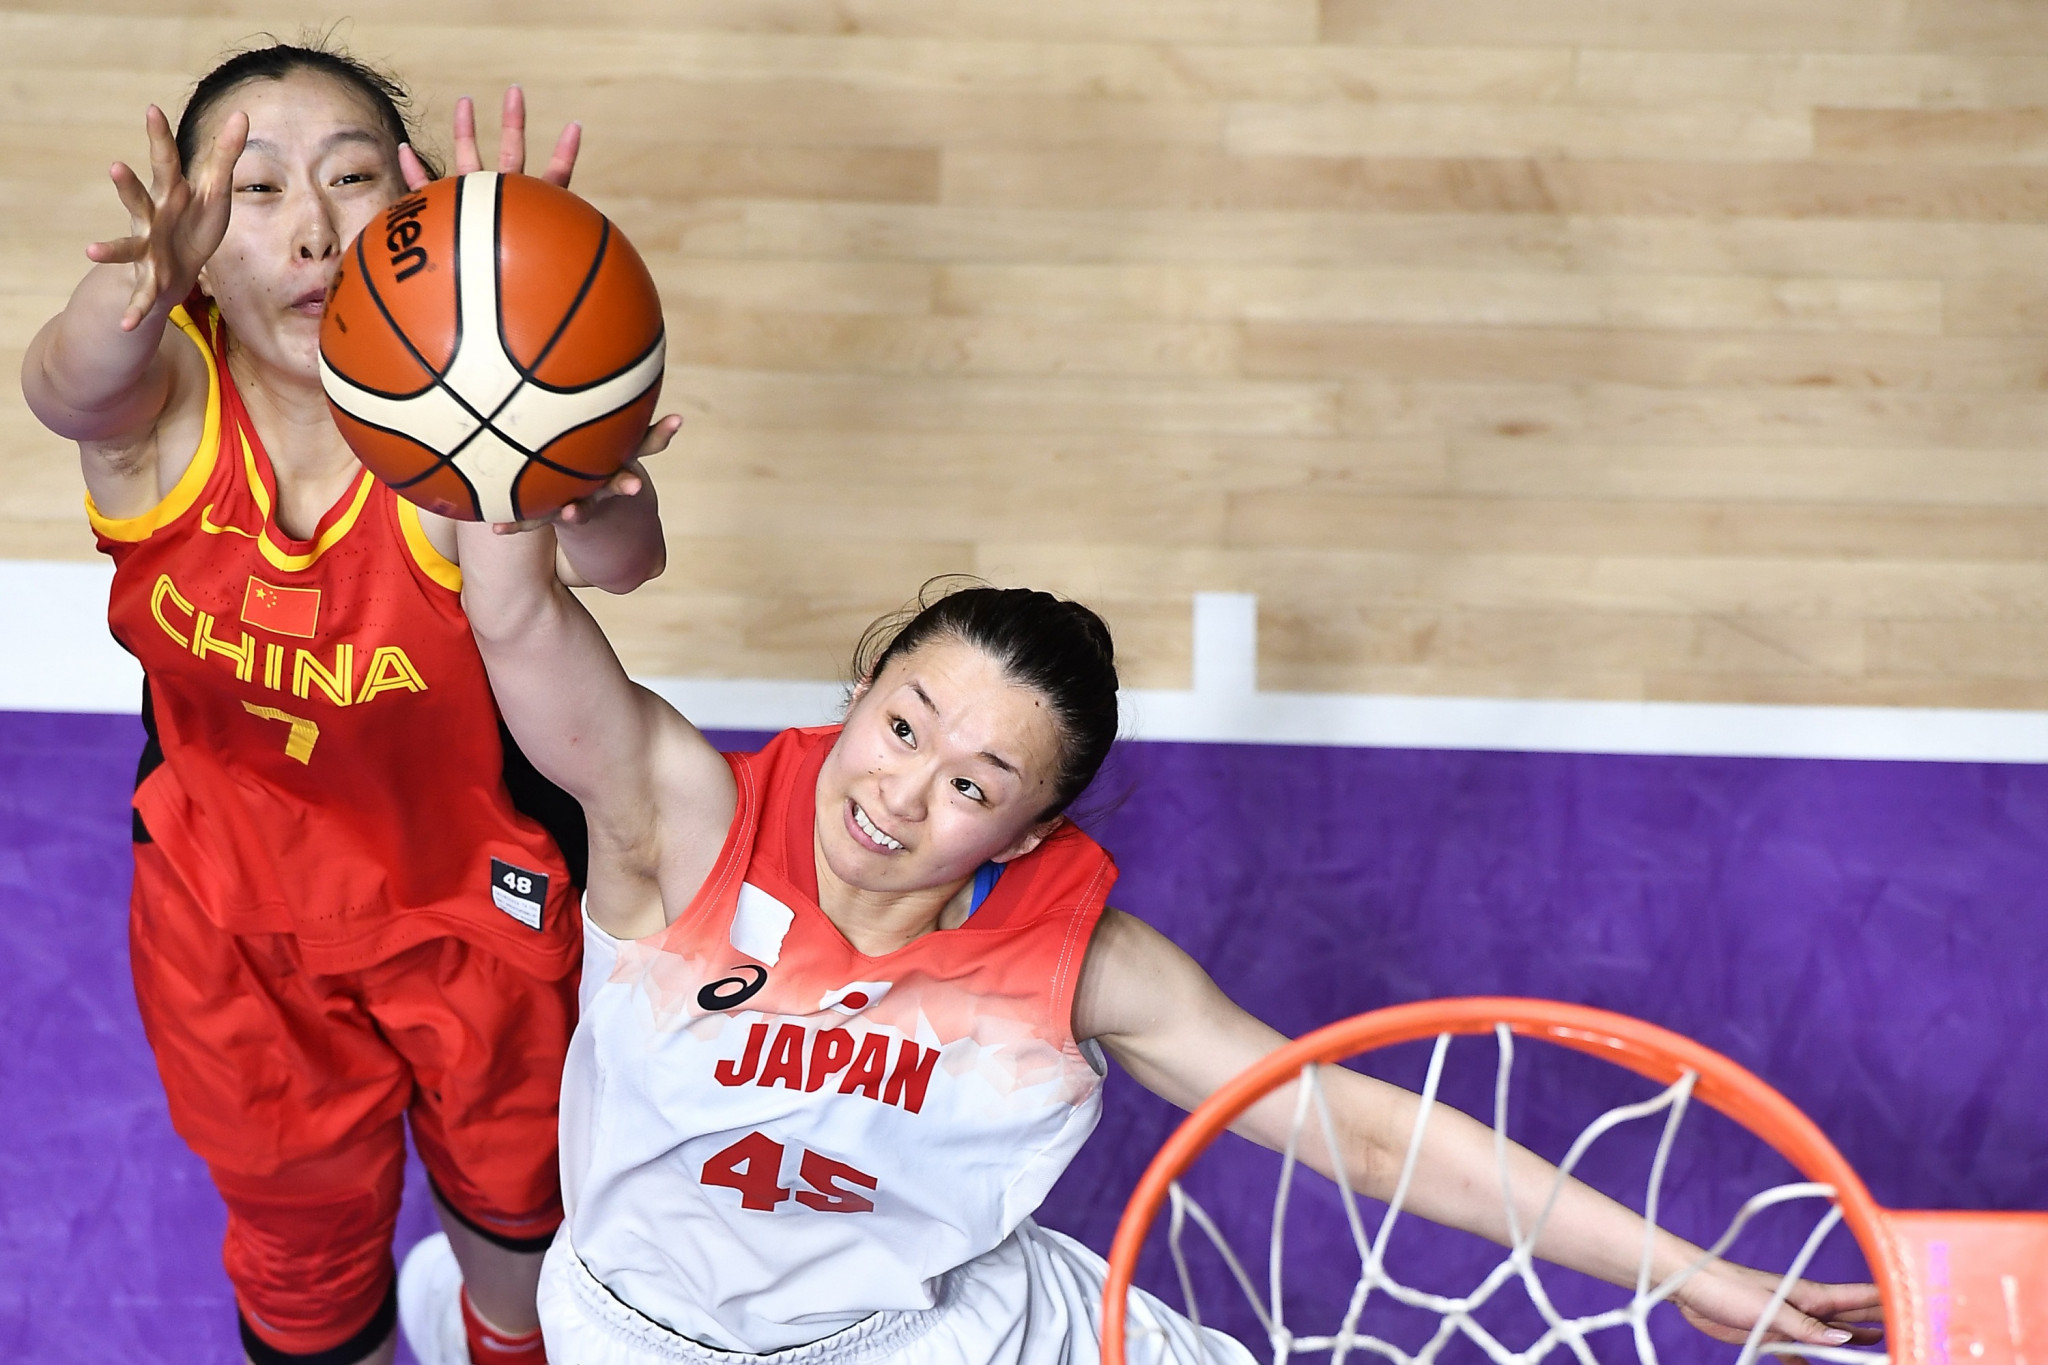 Basketball 5x5 was one of several sports in which preliminary-round action was held today with China beating Japan 105-73 in Group B of the women's event ©Getty Images